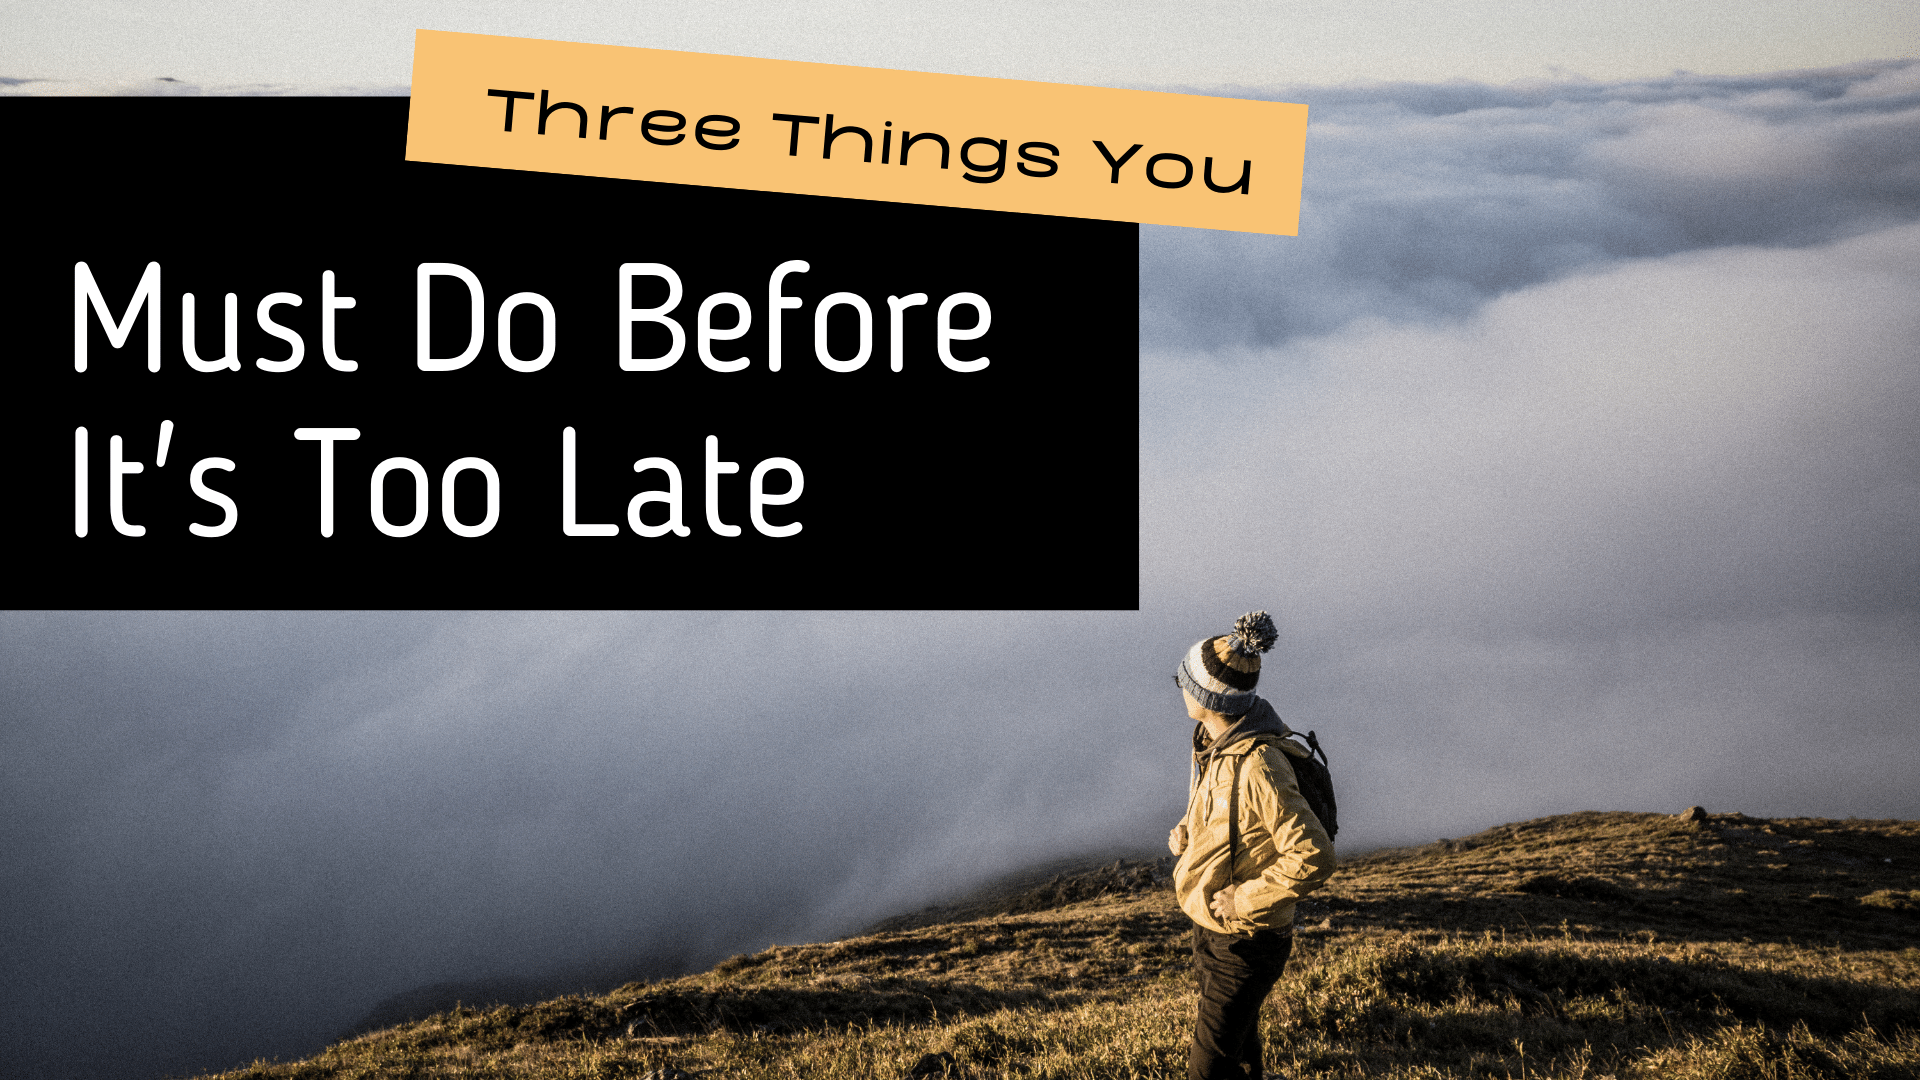 Three Things You Must Do